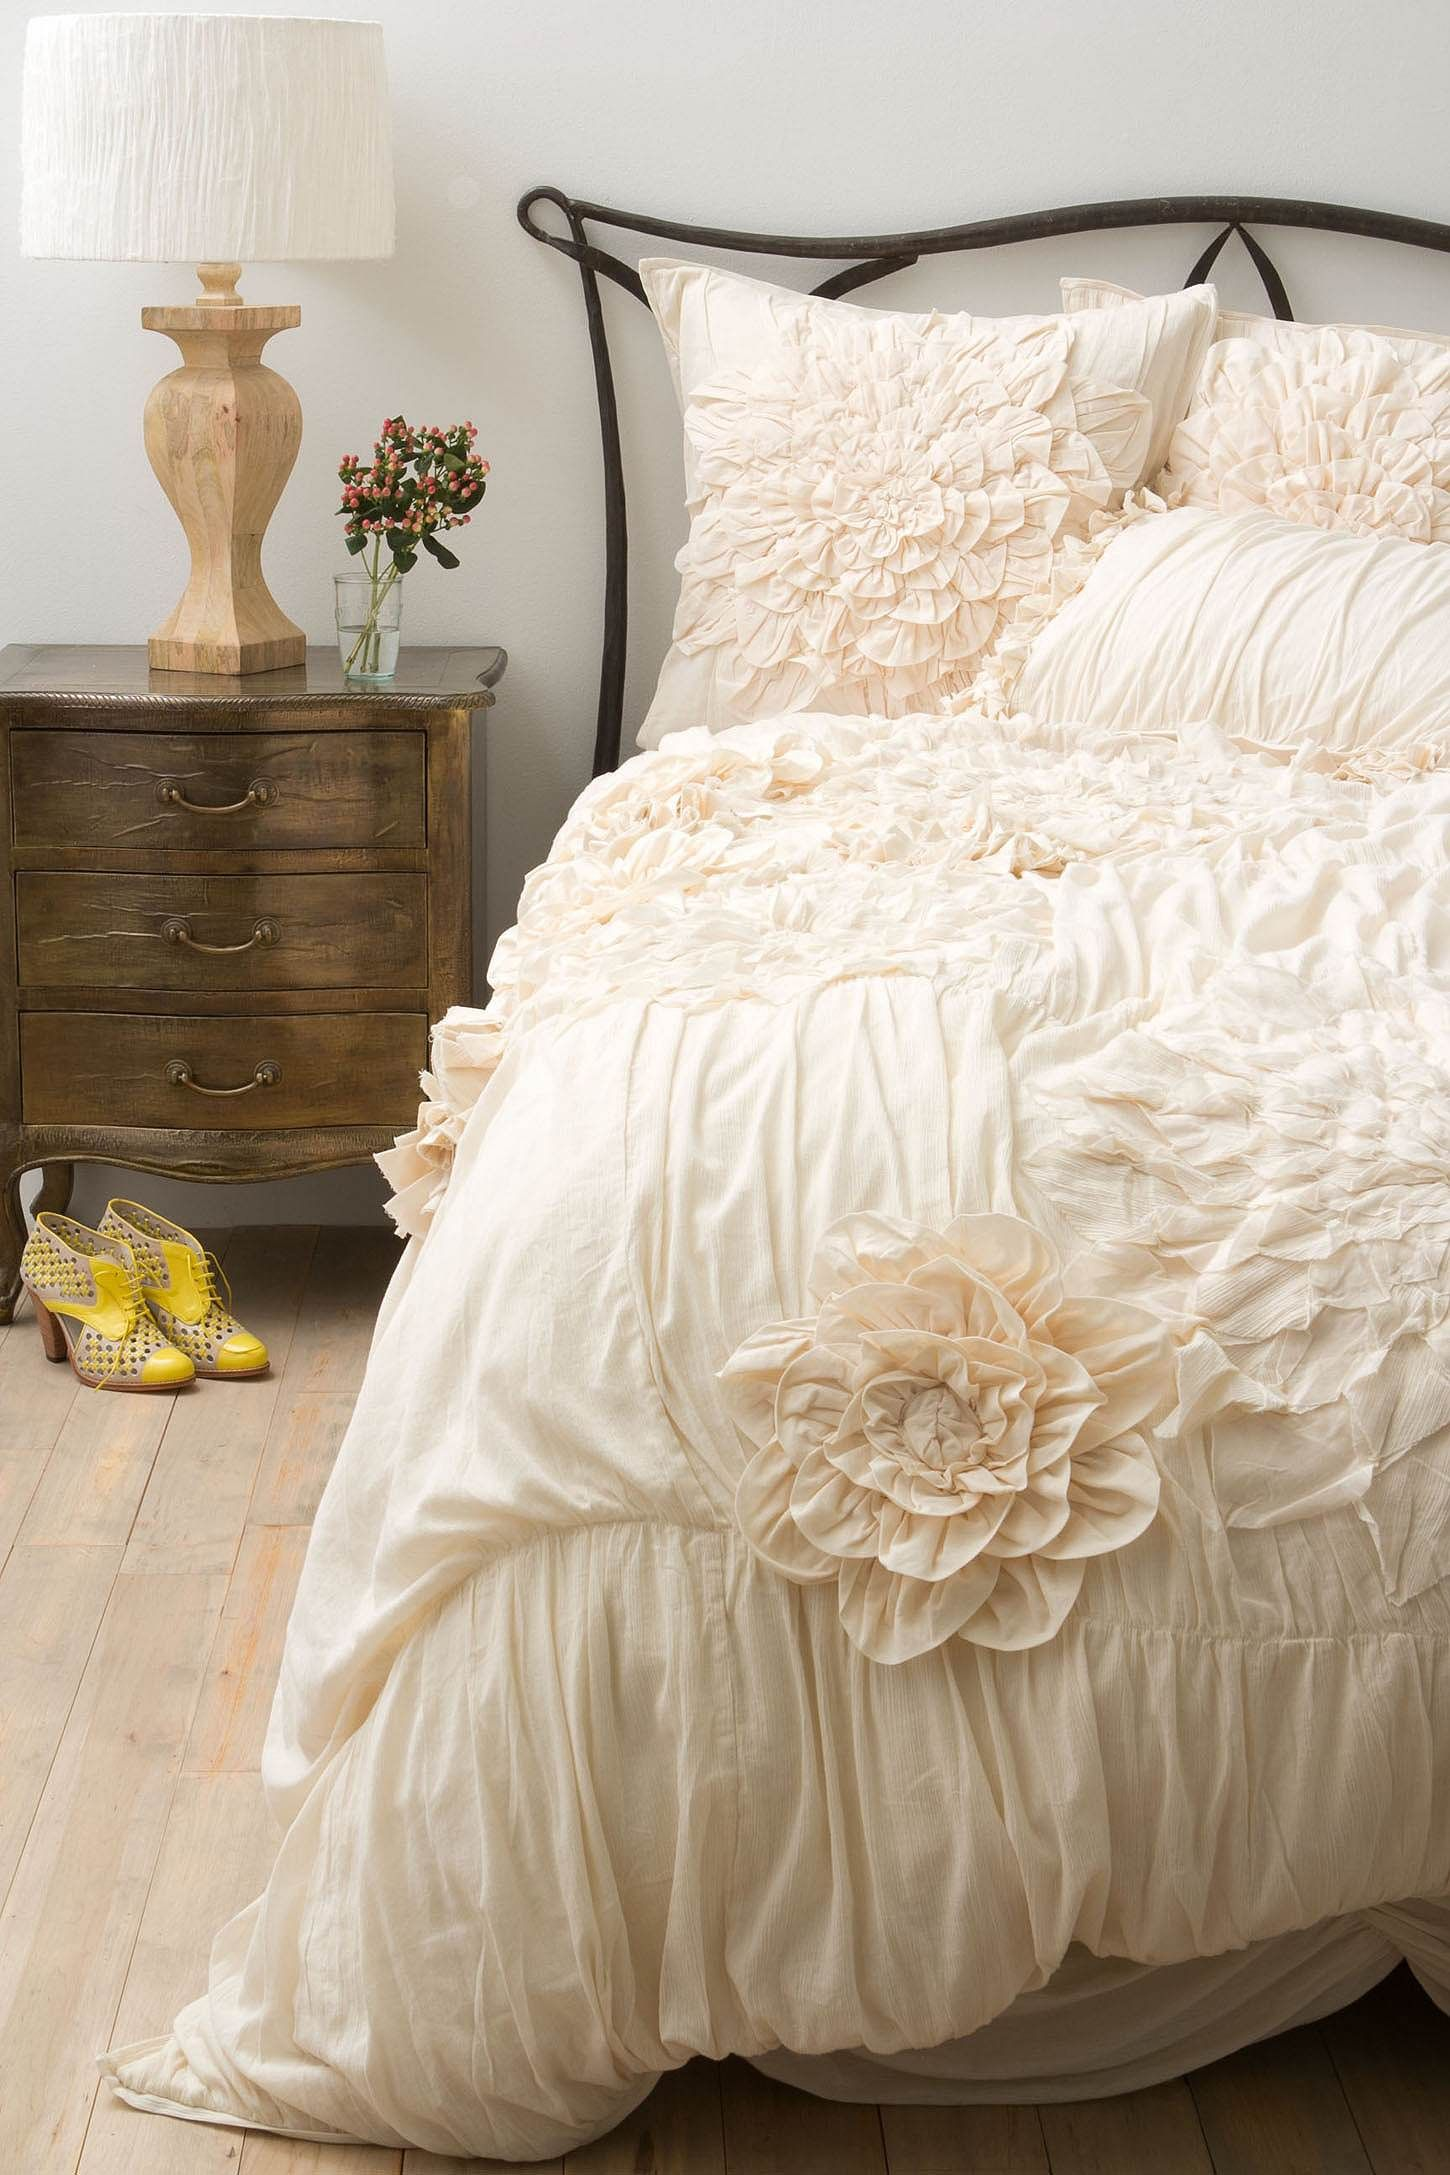 Sure enough considering getting this bedding in white. Obsessed with how delicate & girly it is.